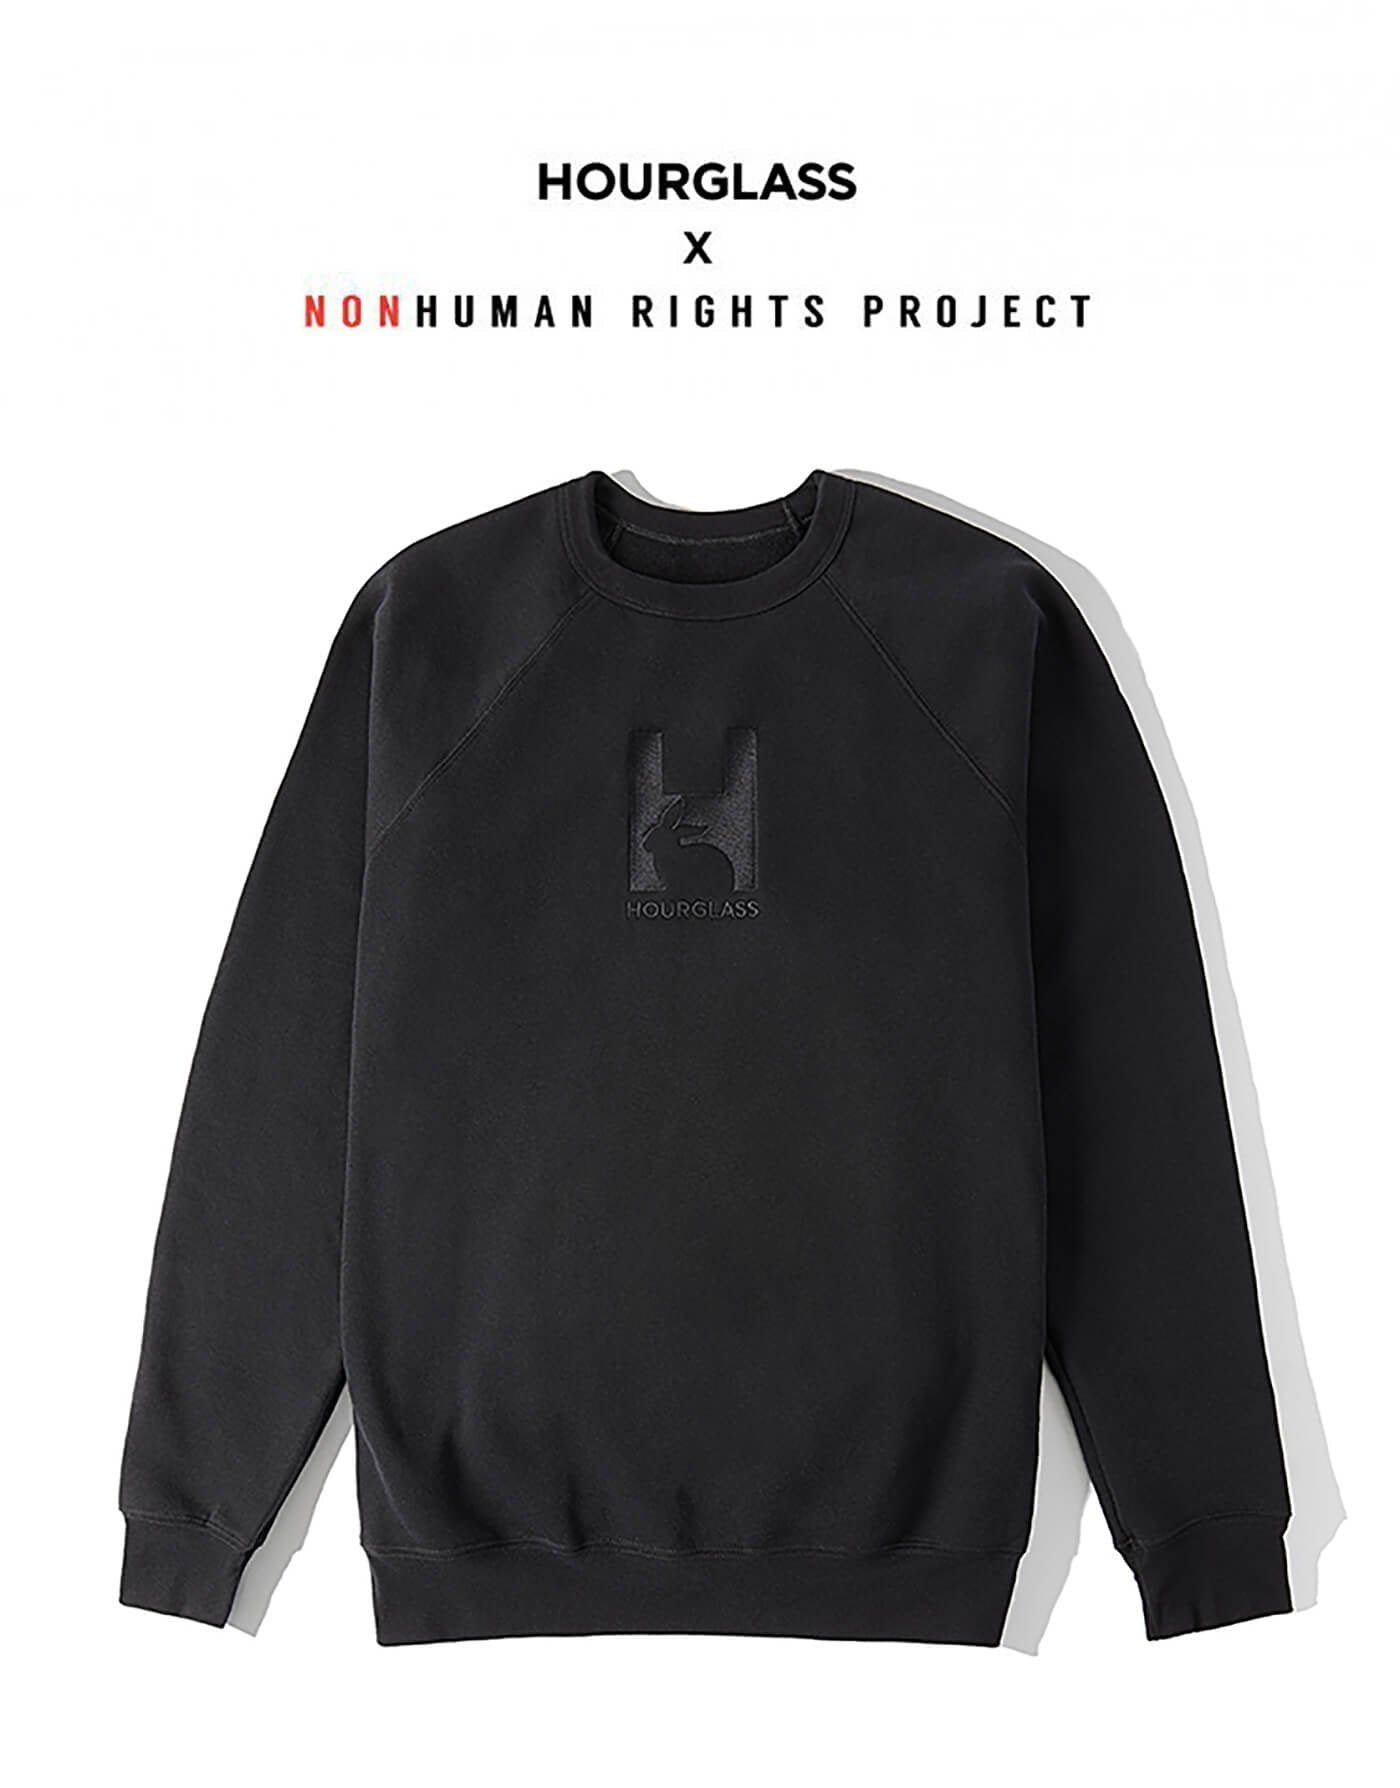 The Hourglass Sweatshirt